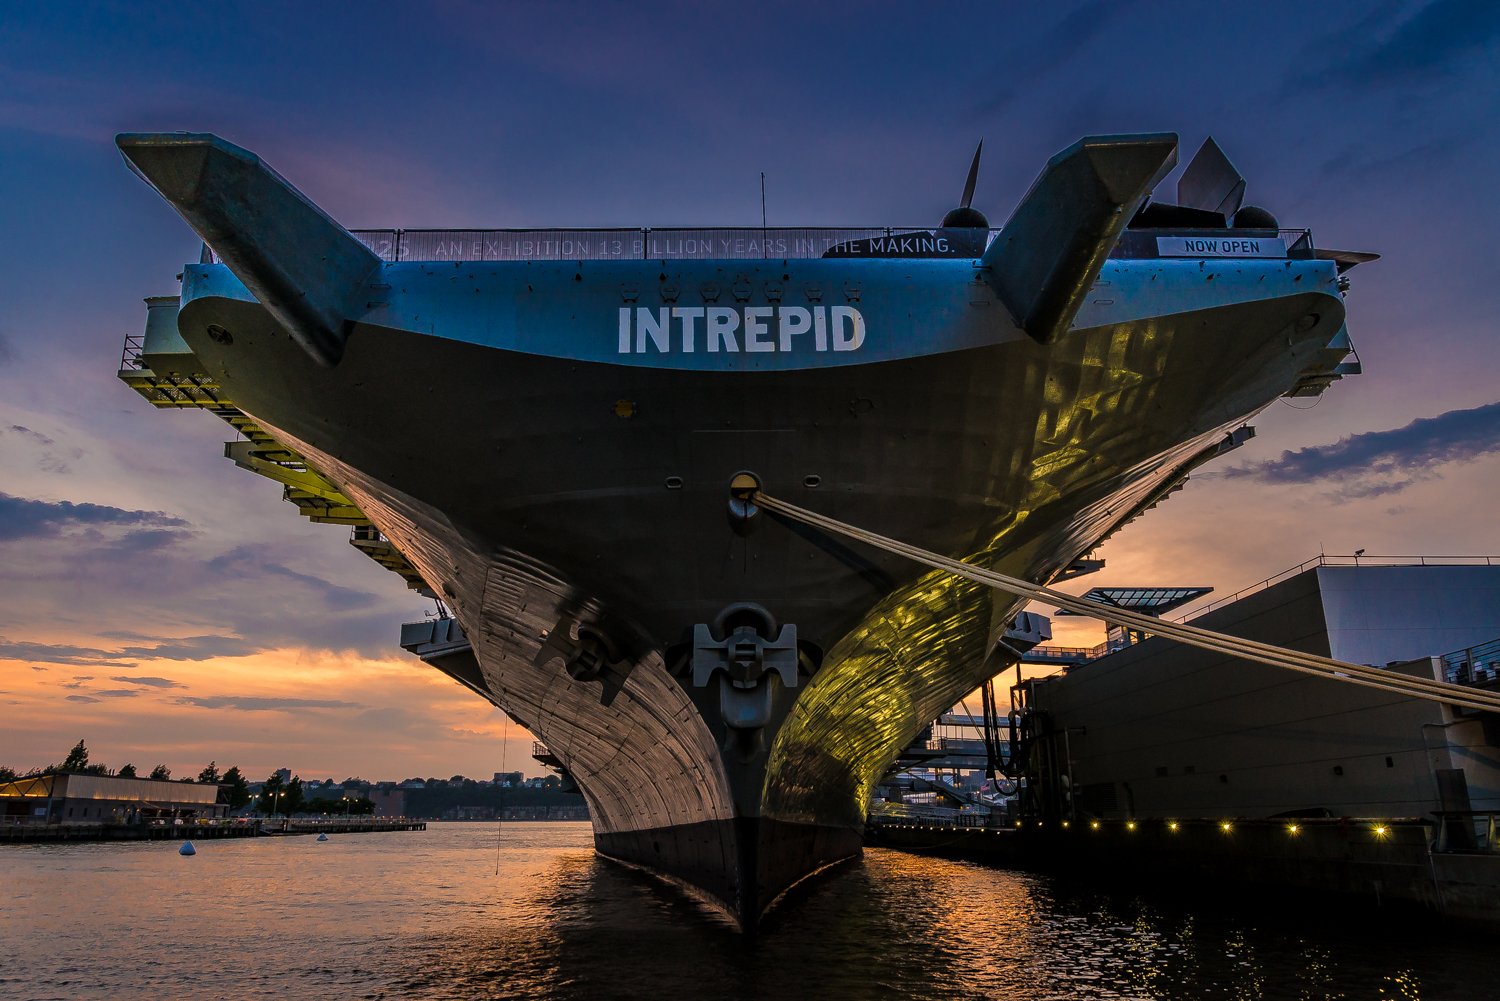 Intrepid Sunset - June 12th,2015